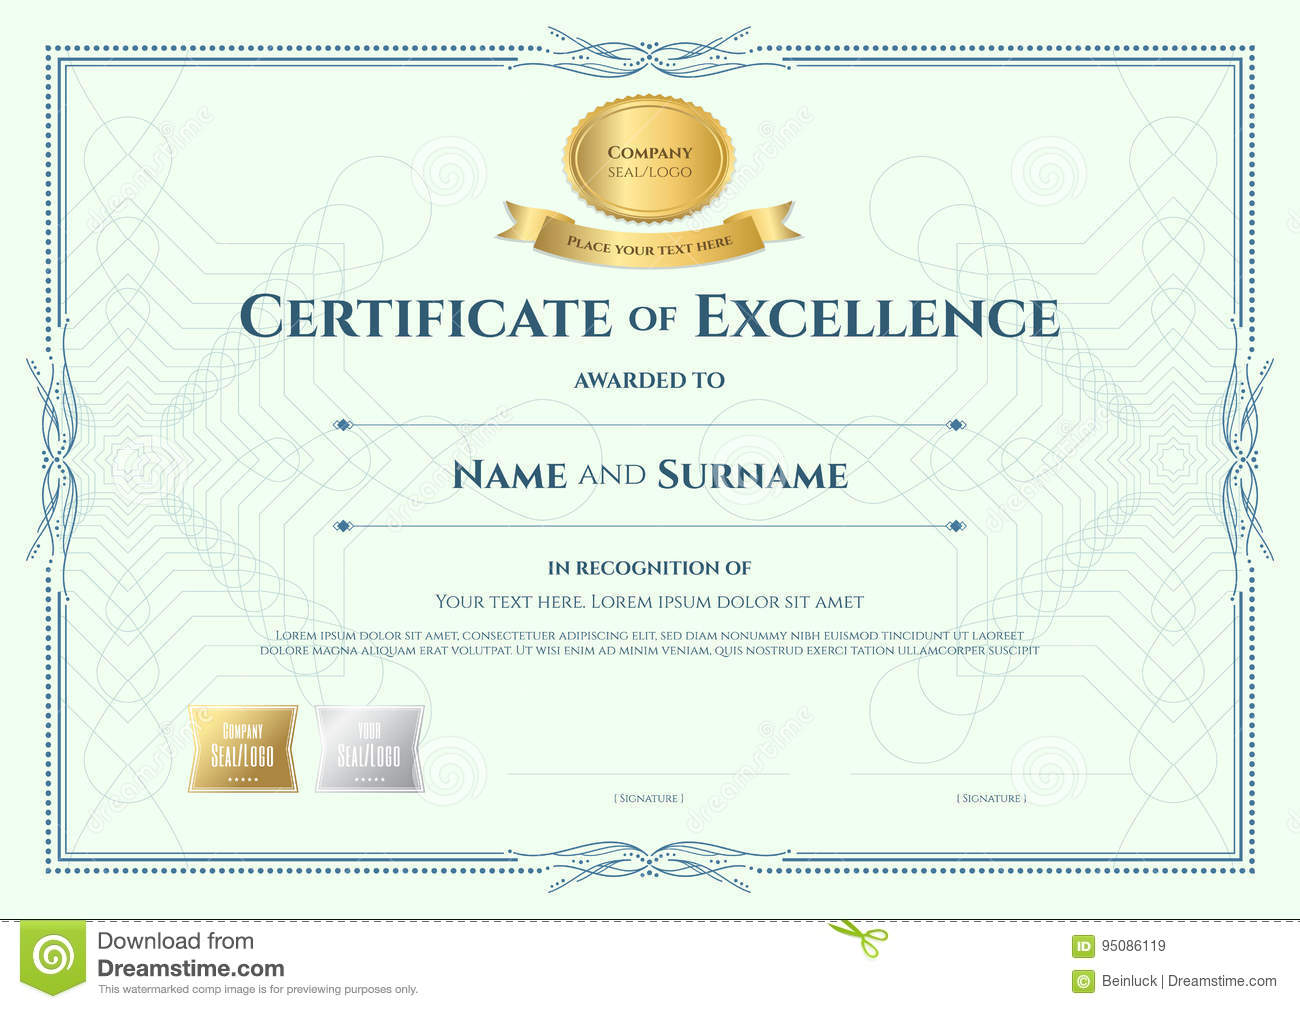 Certificate of appreciation template with gold award ribbon on a royalty free vector download certificate yelopaper Image collections